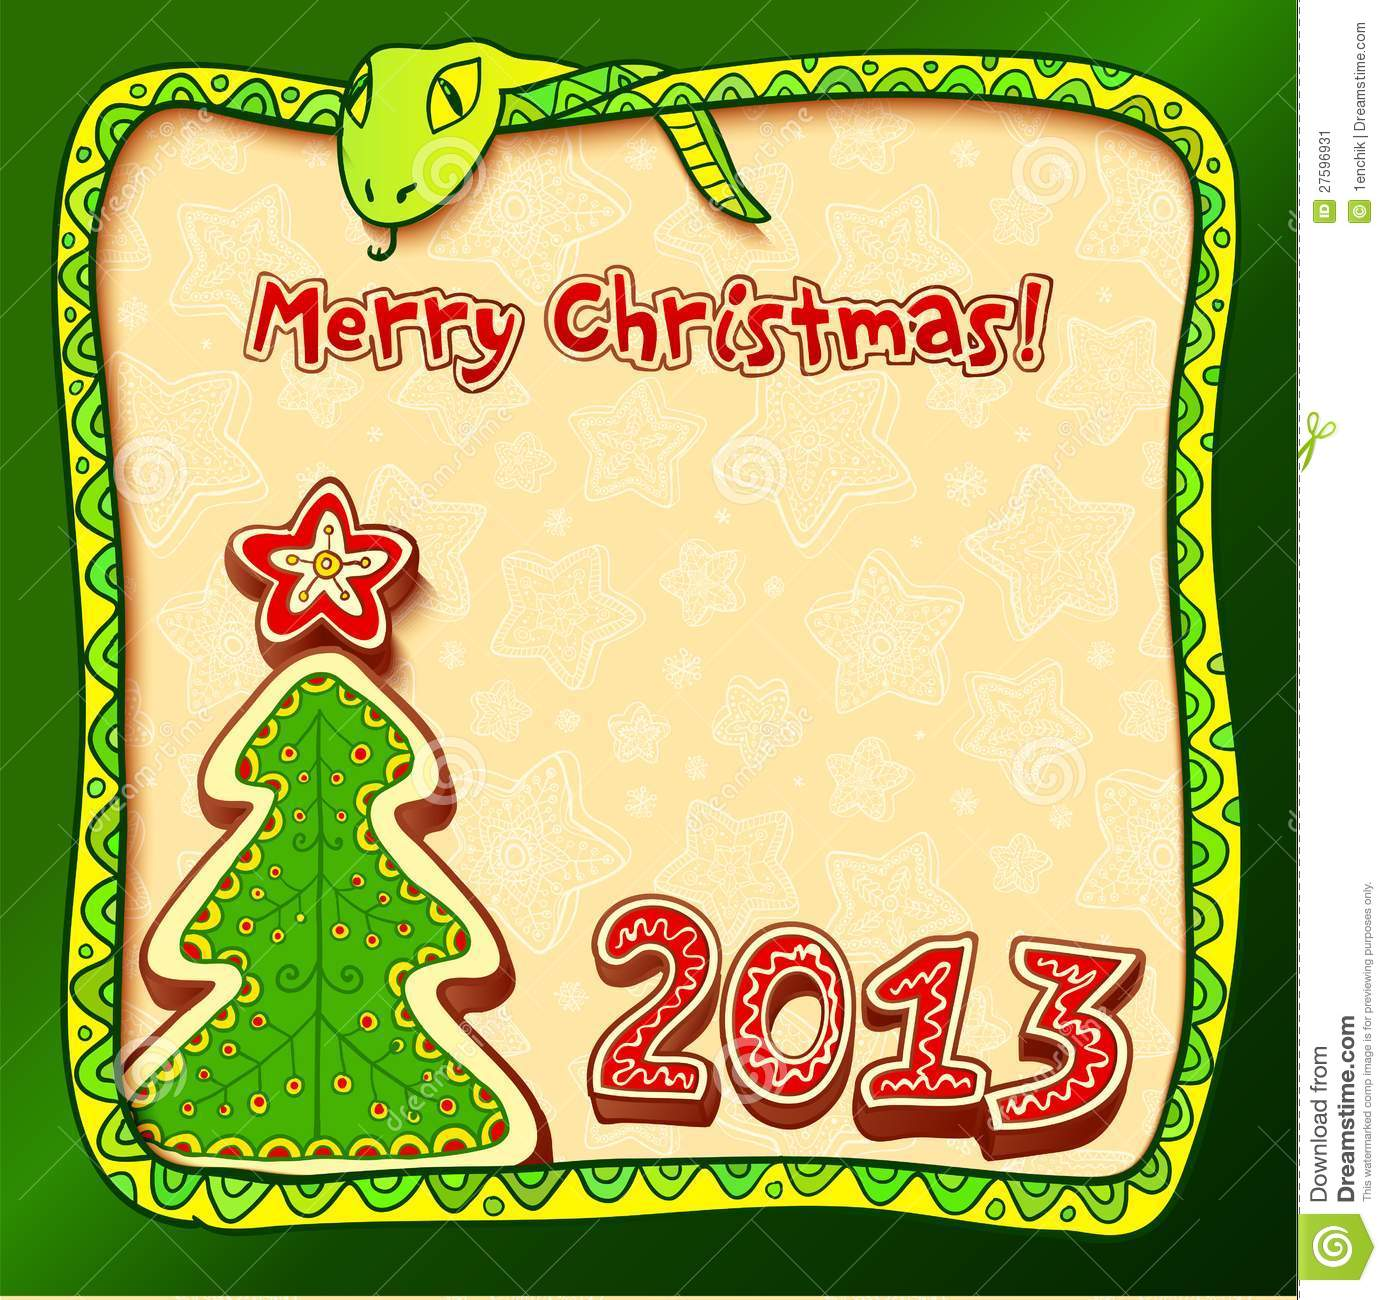 Christmas And New Year 2013 Greeting Card Stock Illustration